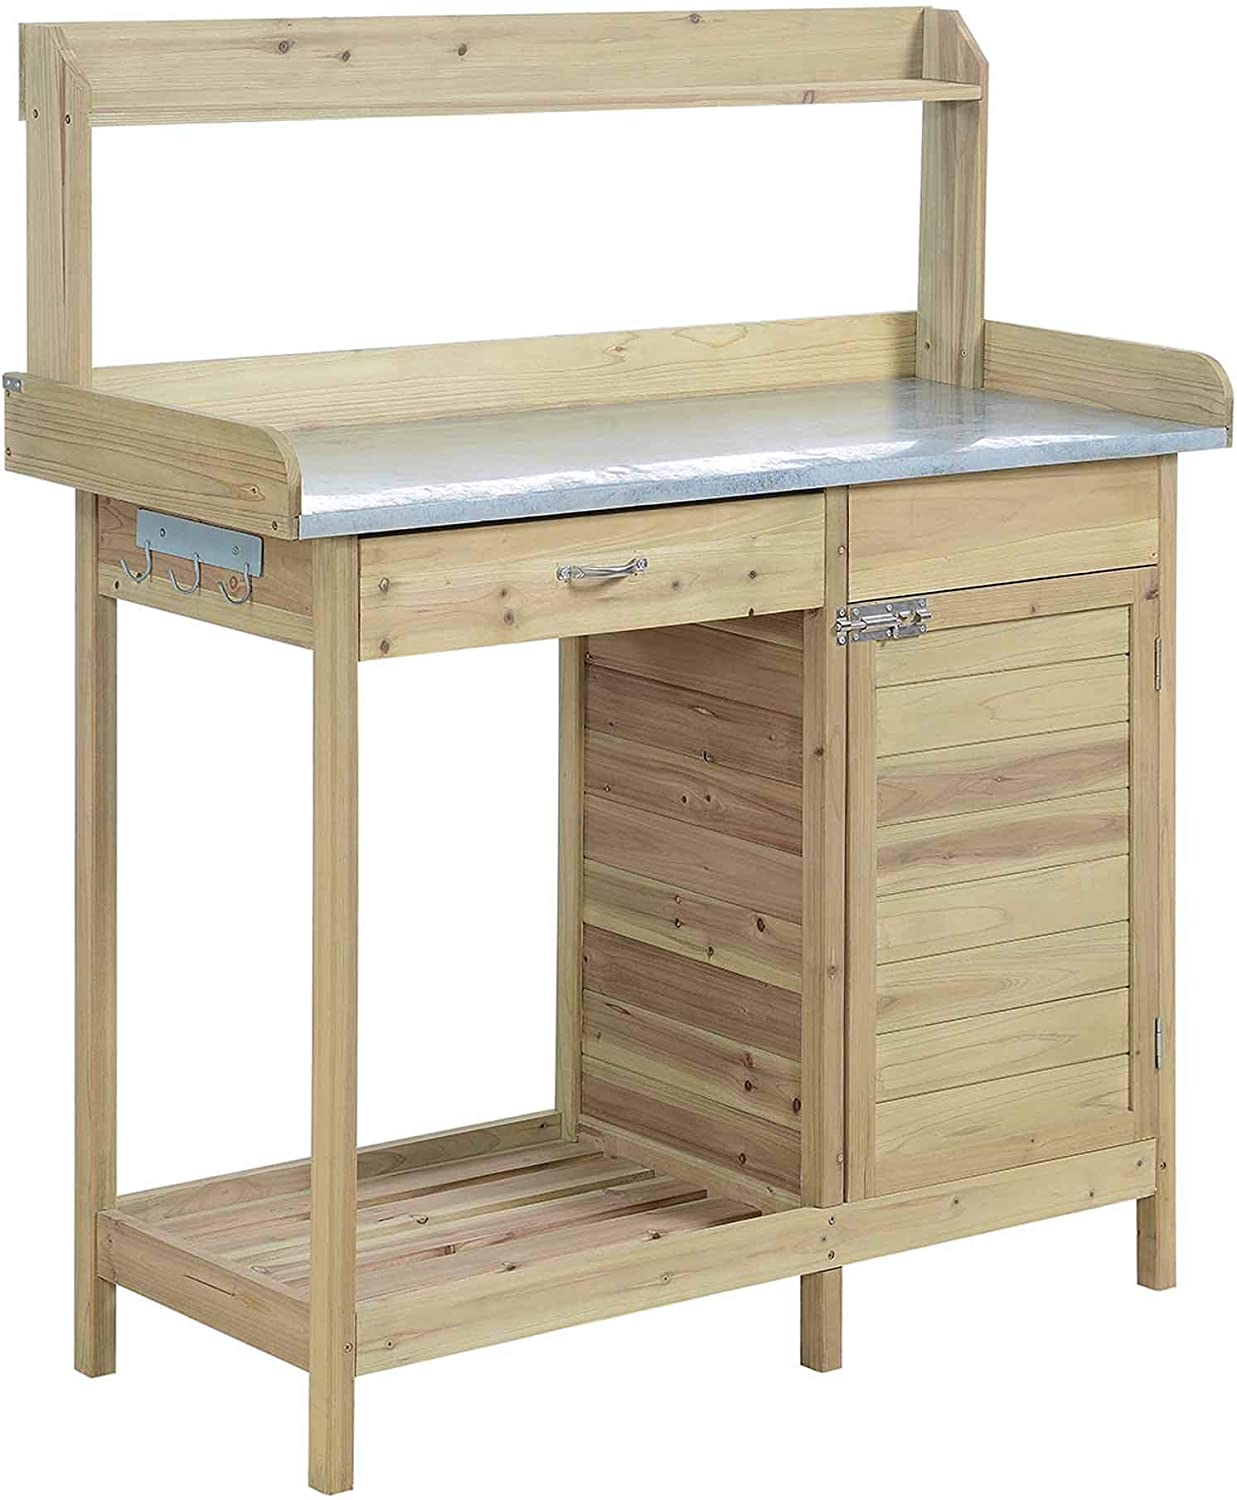 Convenience Concepts Deluxe Potting Bench with Cabinet, Natural Fir